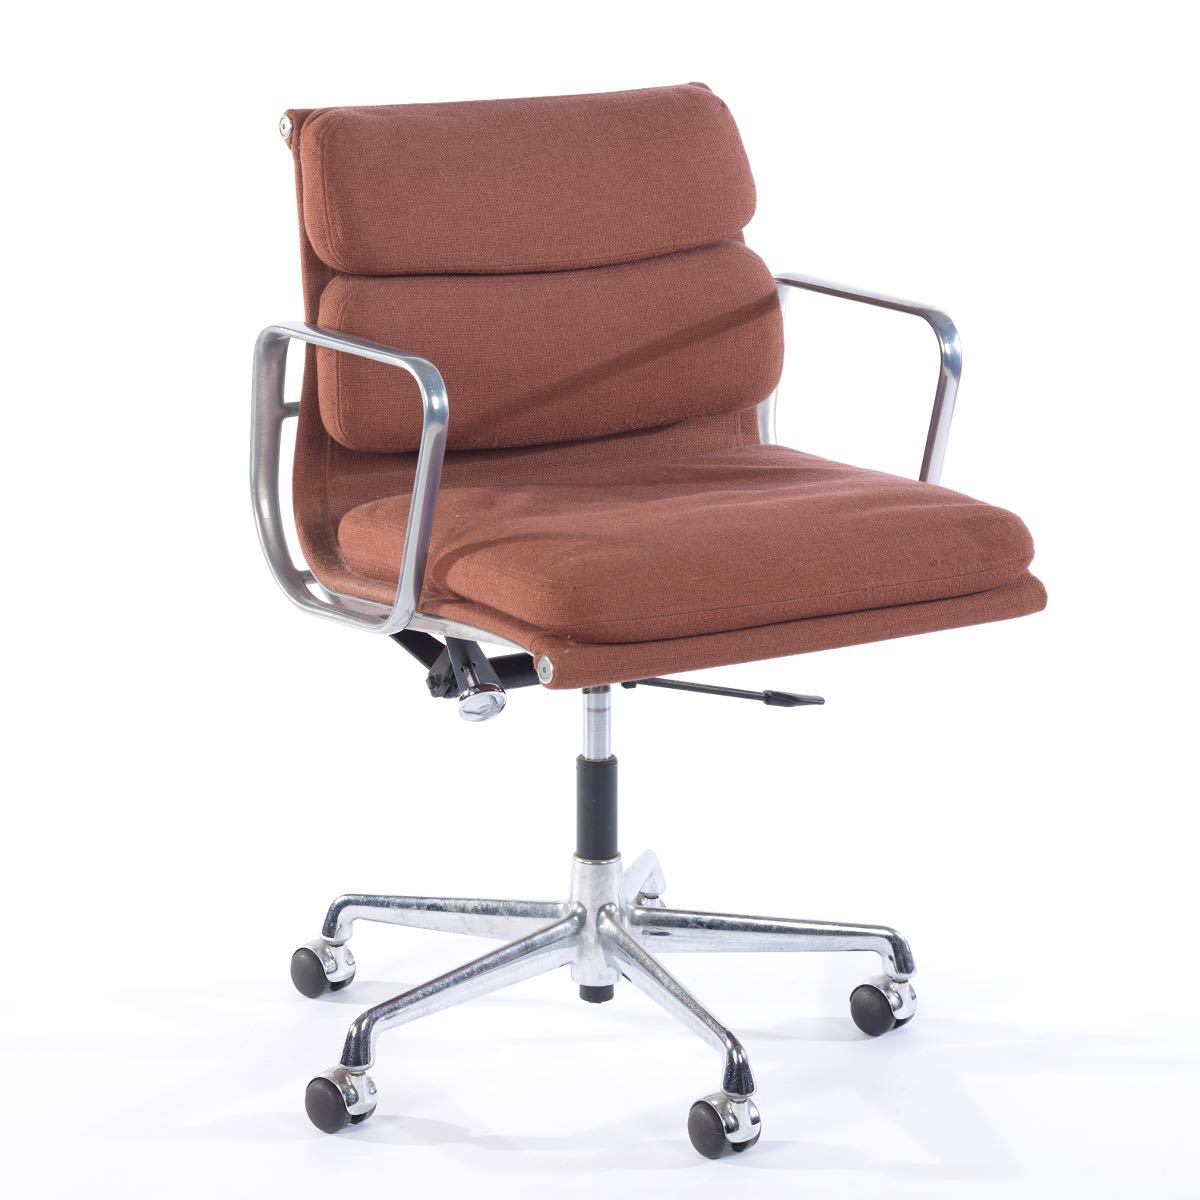 Charles Eames for Herman Miller Soft Pad Executive ChairCharles Eames for Herman Miller Soft Pad Executive Chair   02 21 15. Eames Soft Pad Management Chair Used. Home Design Ideas